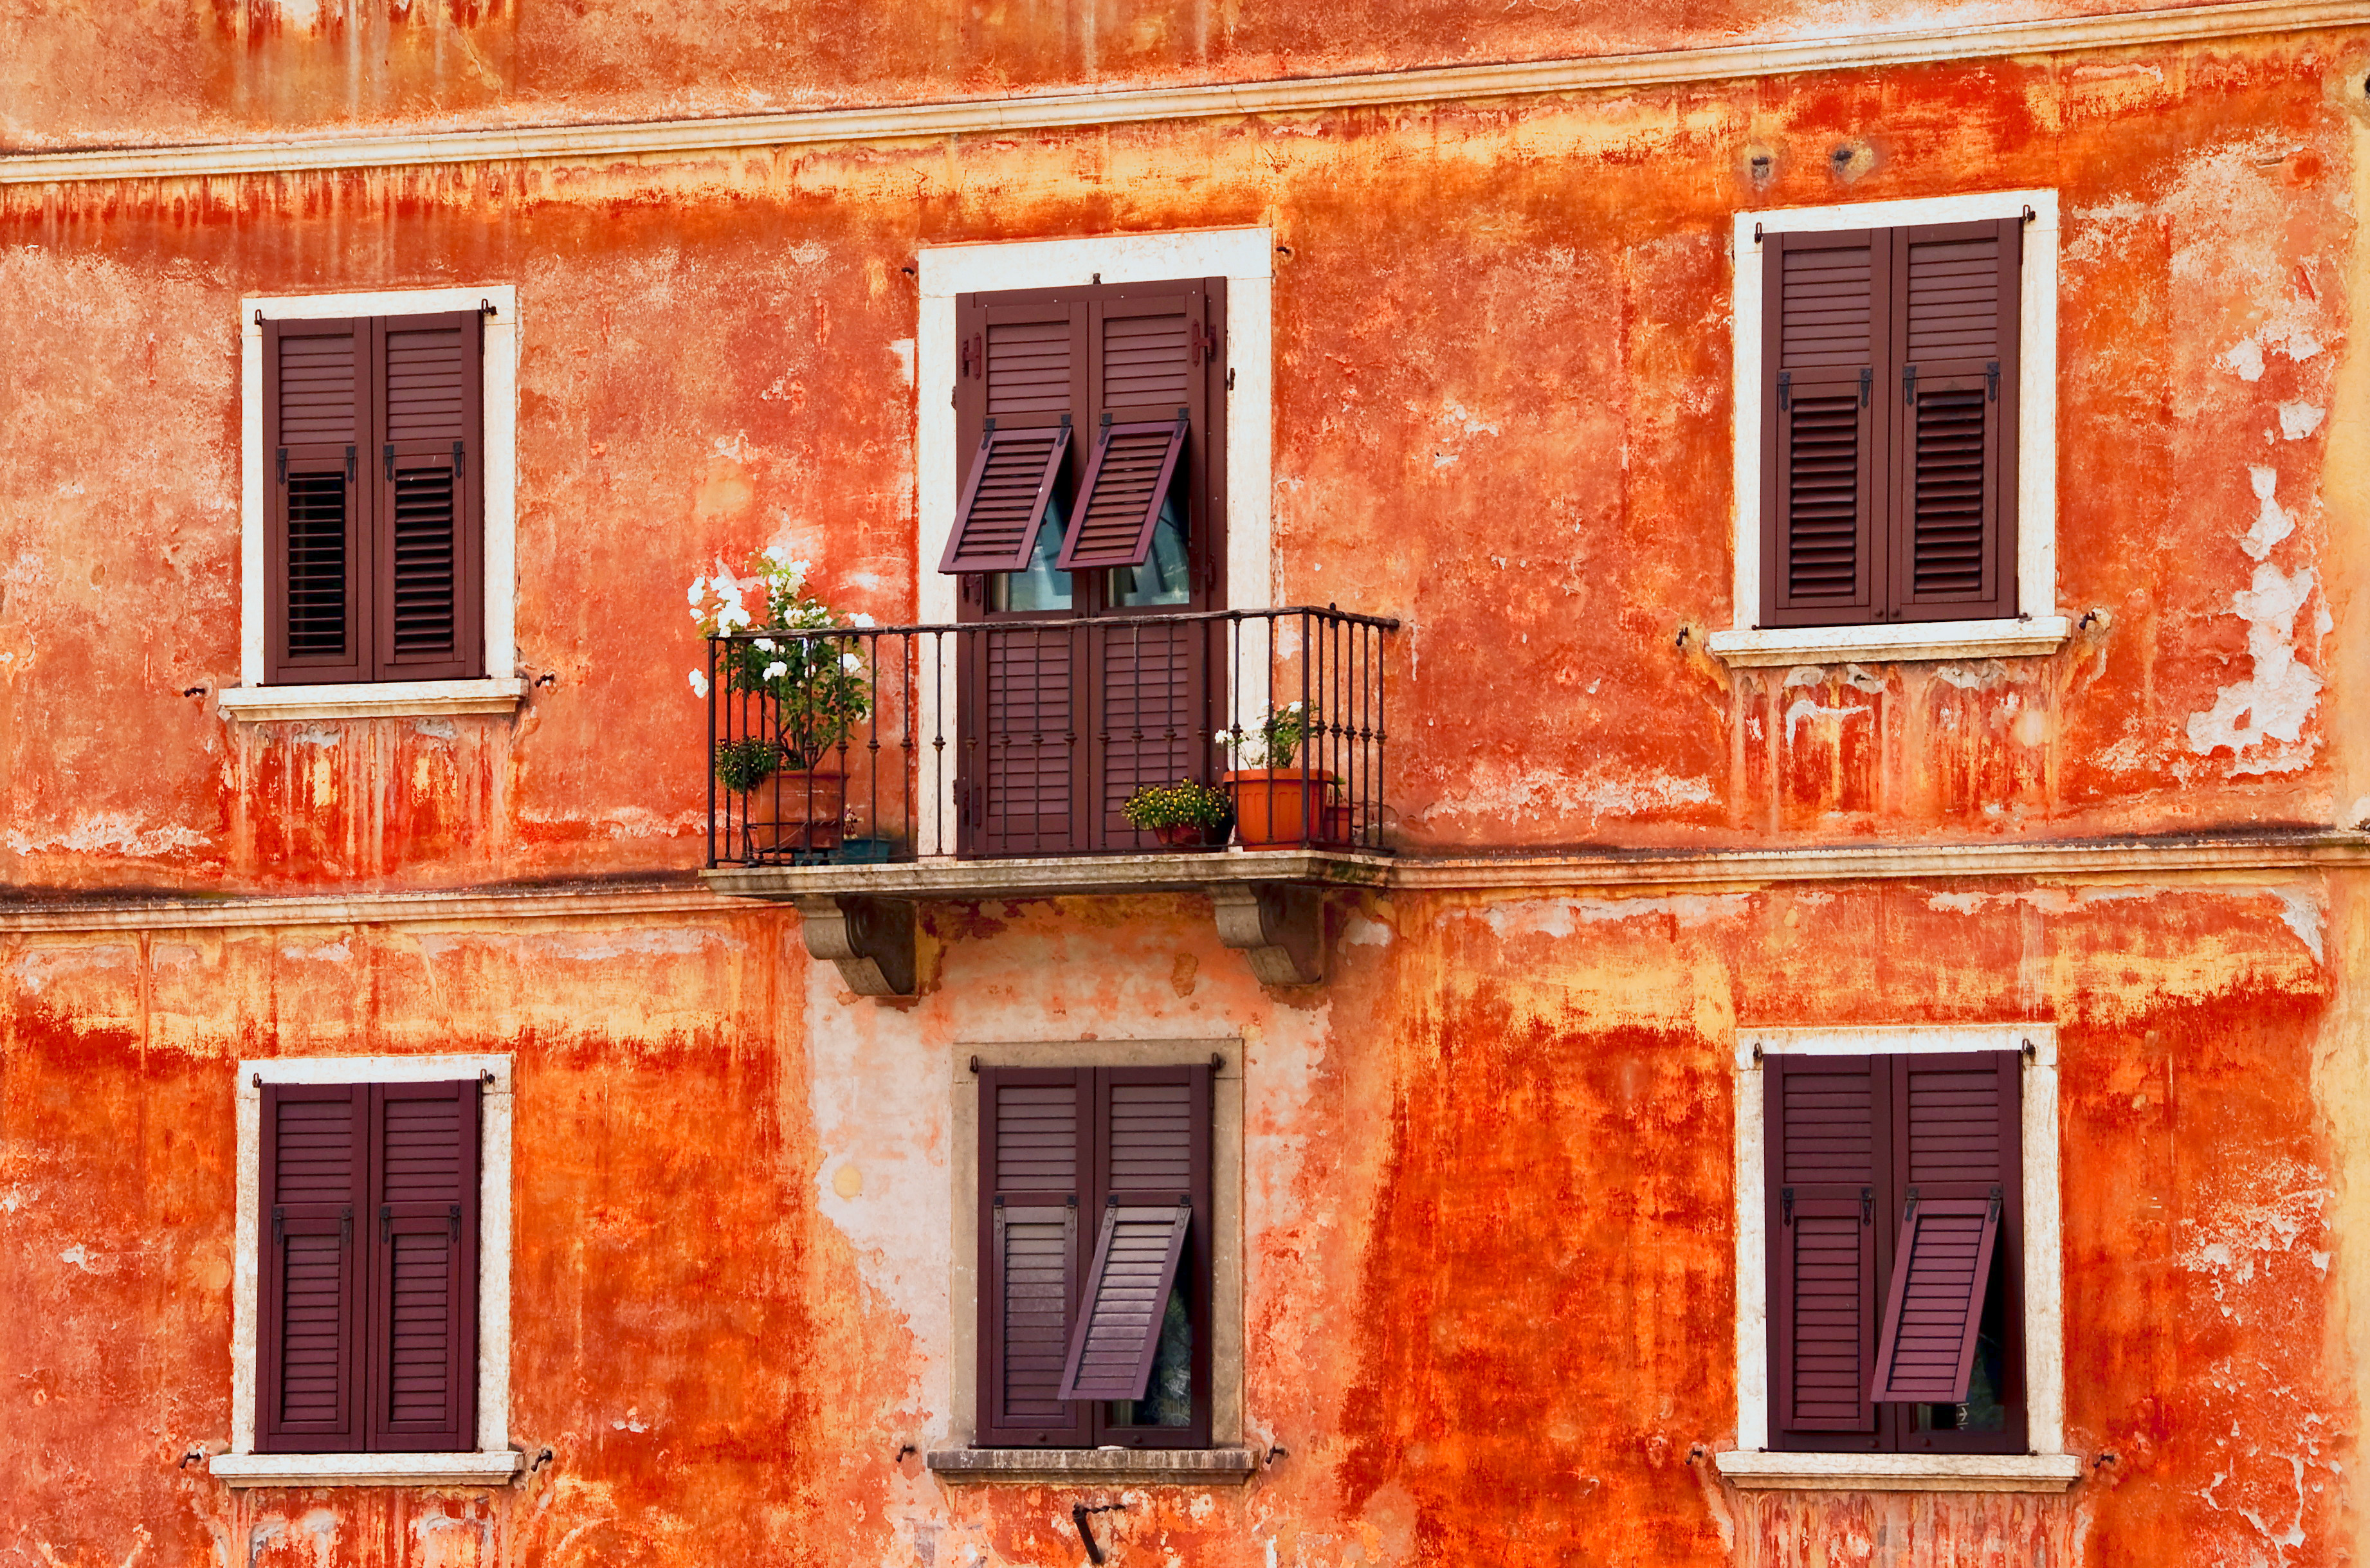 13 fantastic hd balcony wallpapers for Balcony images